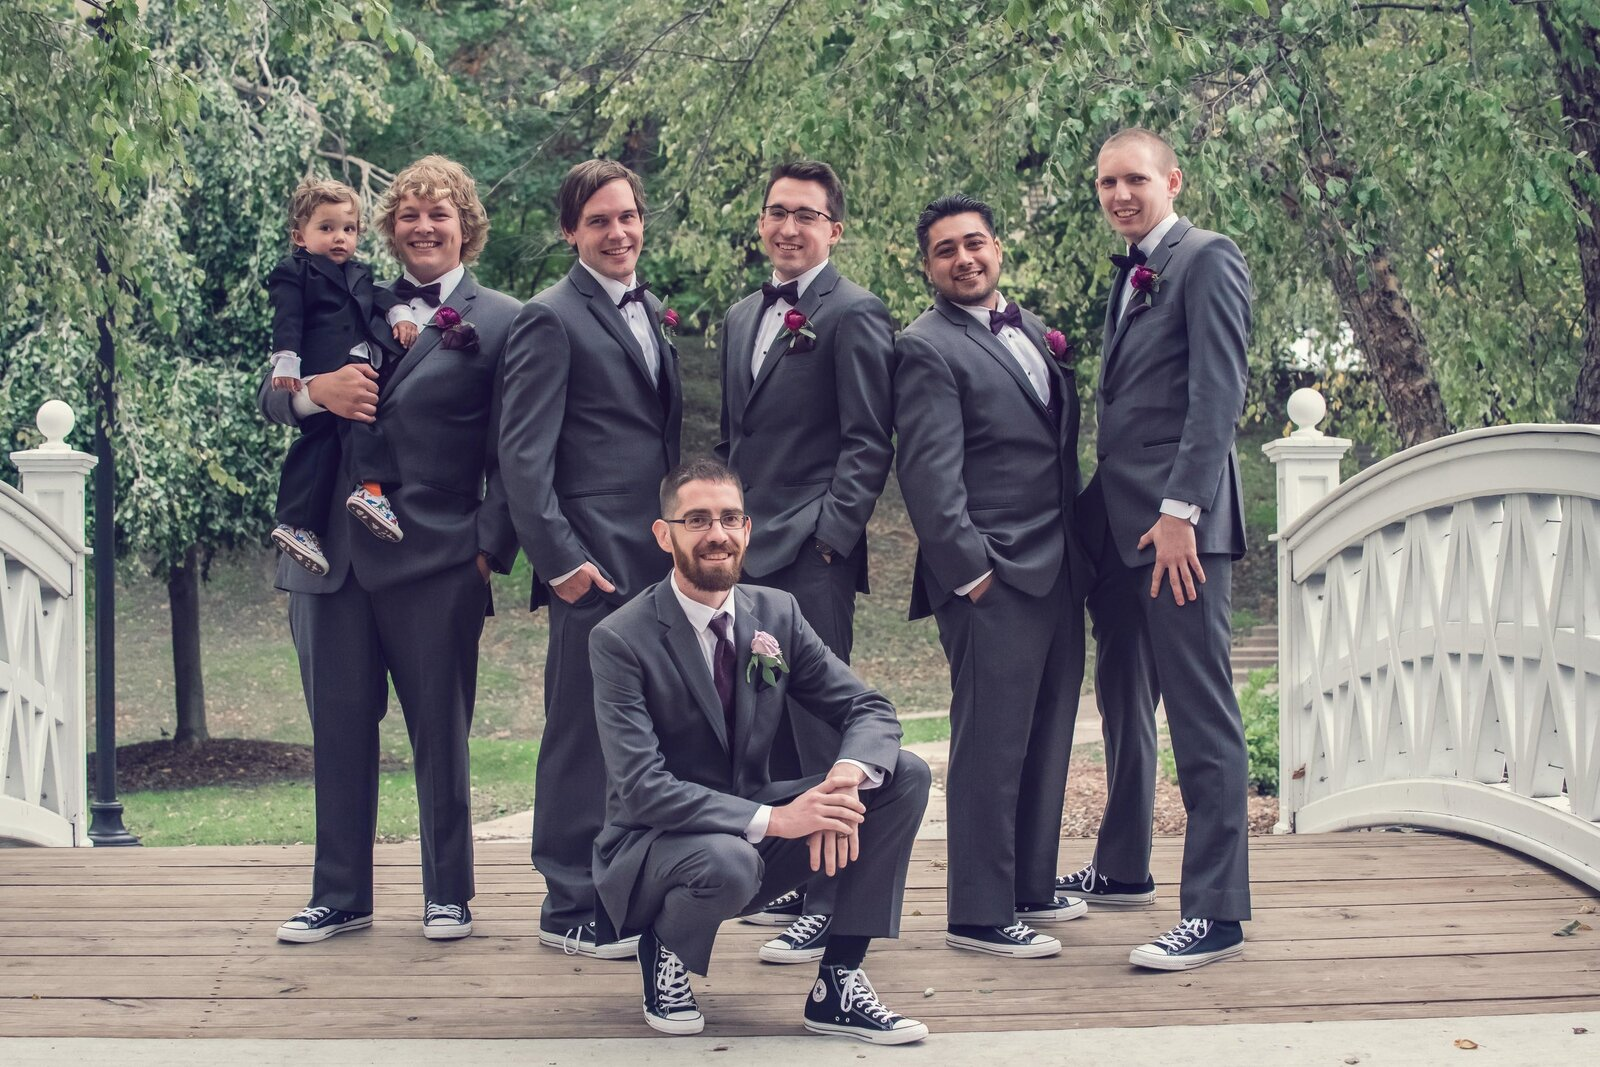 wedding-groomsmen-groom-lords-park-portrait